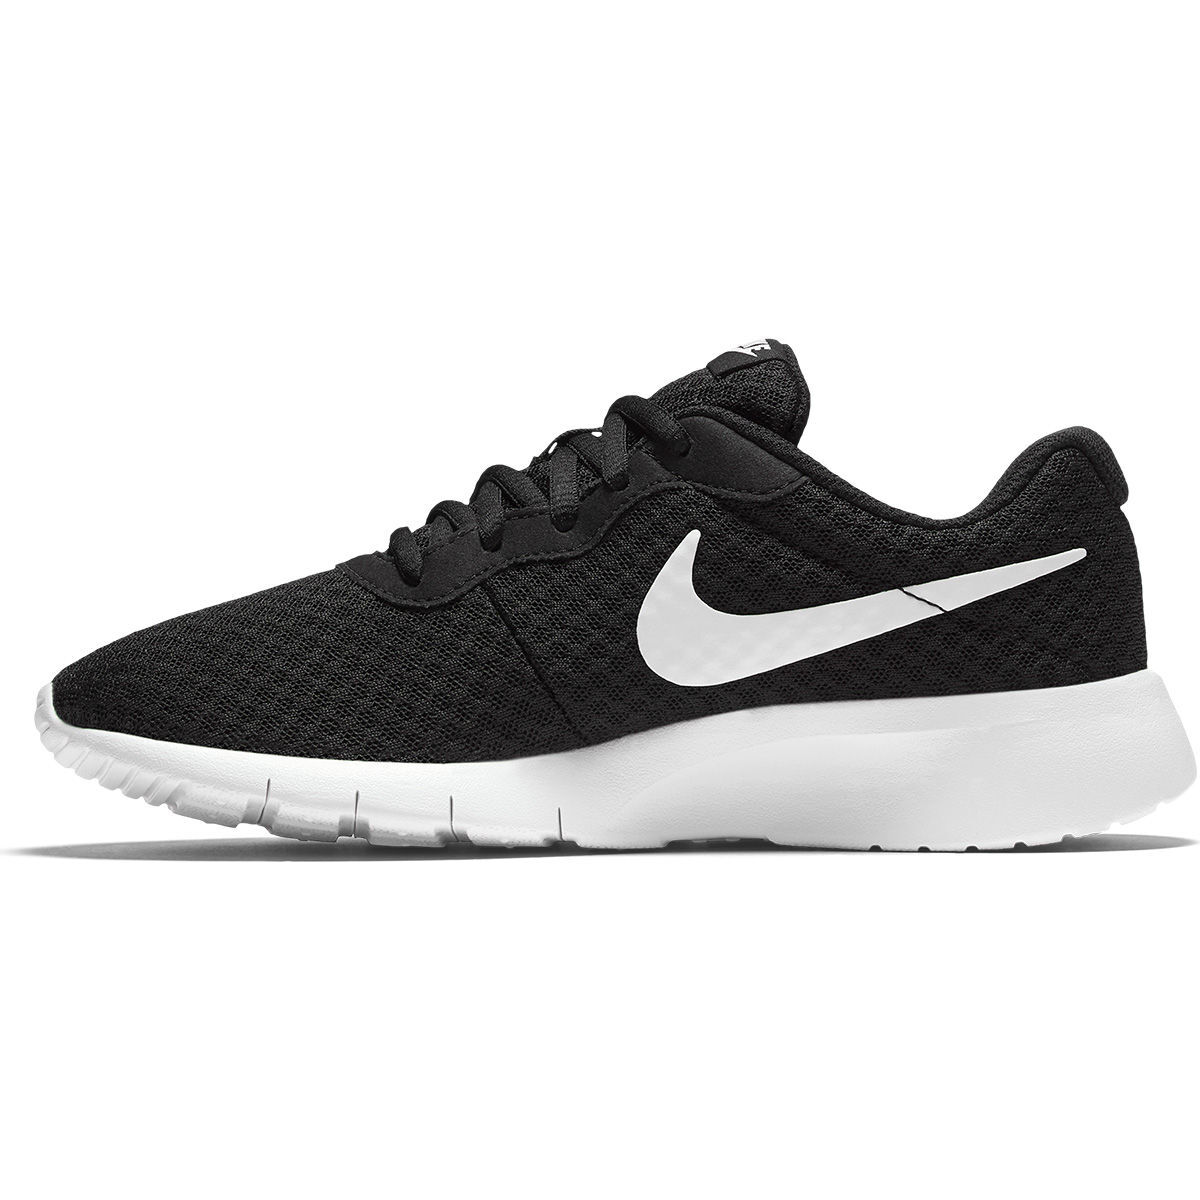 check out 842ac ee211 Nike Jugend Sneaker Tanjun